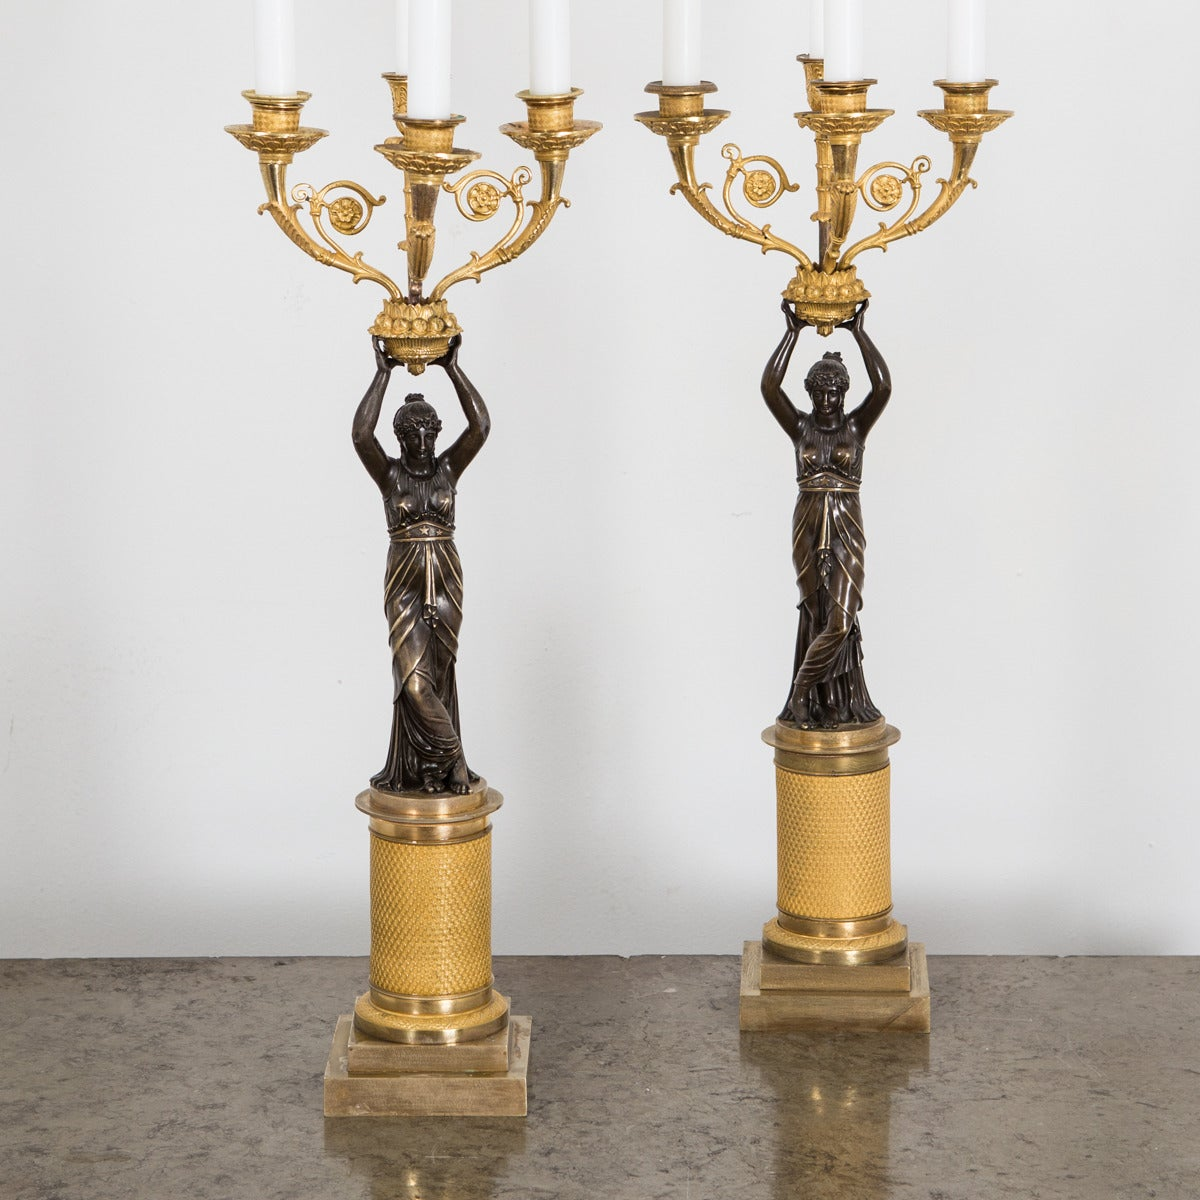 A pair of French candelabras in giltbronze and dark patinated bronze. Beautiful quality and patina.